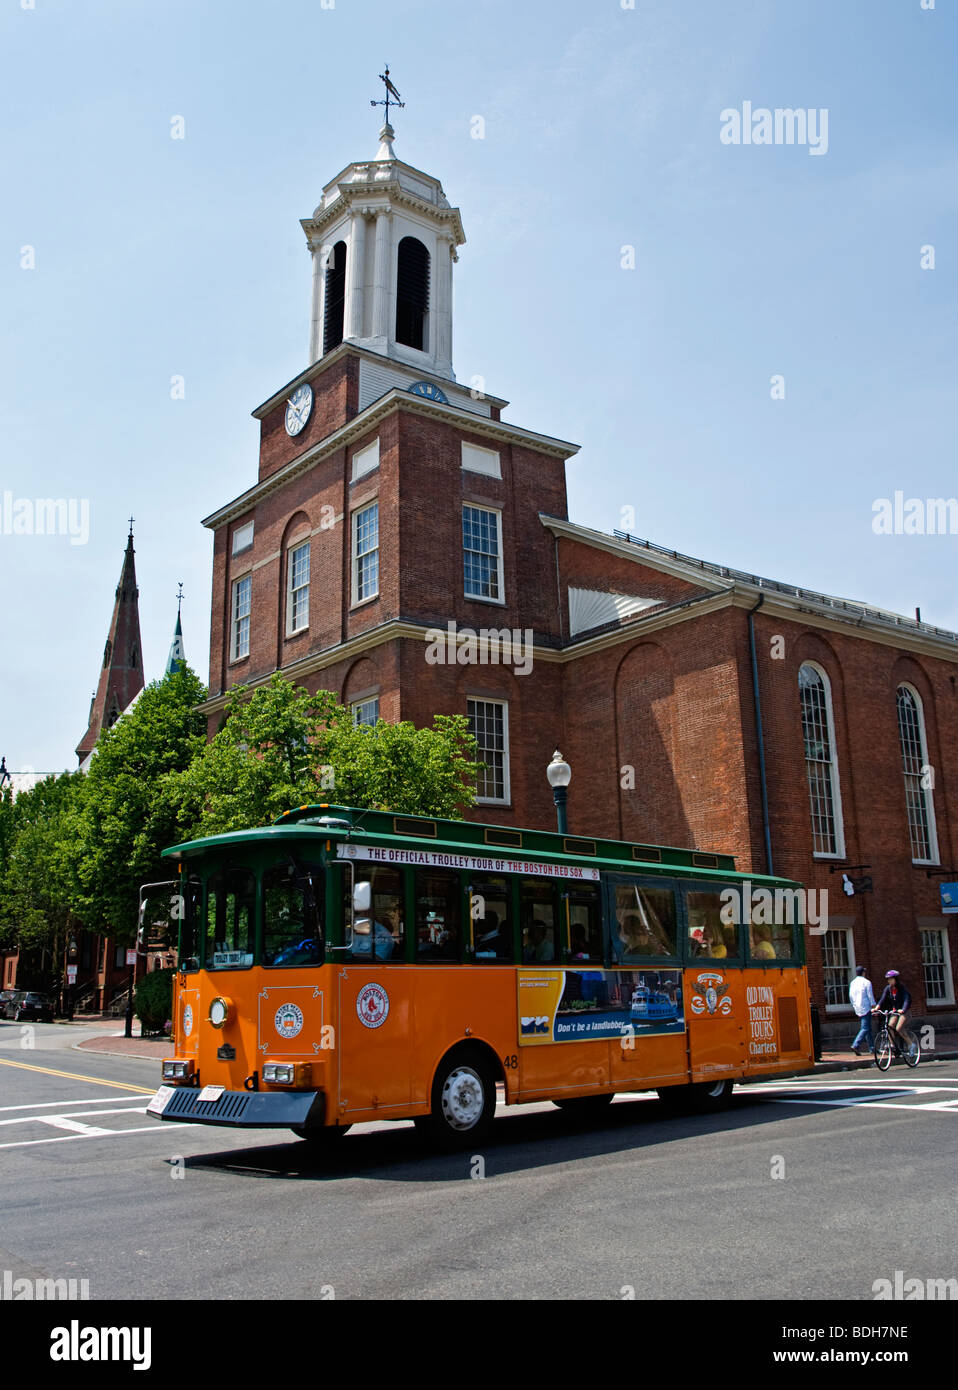 A public tram passes in front of the CHARLES STREET MEETING HOUSE on Beacon Hill - BOSTON, MASSACHUSETTS - Stock Image